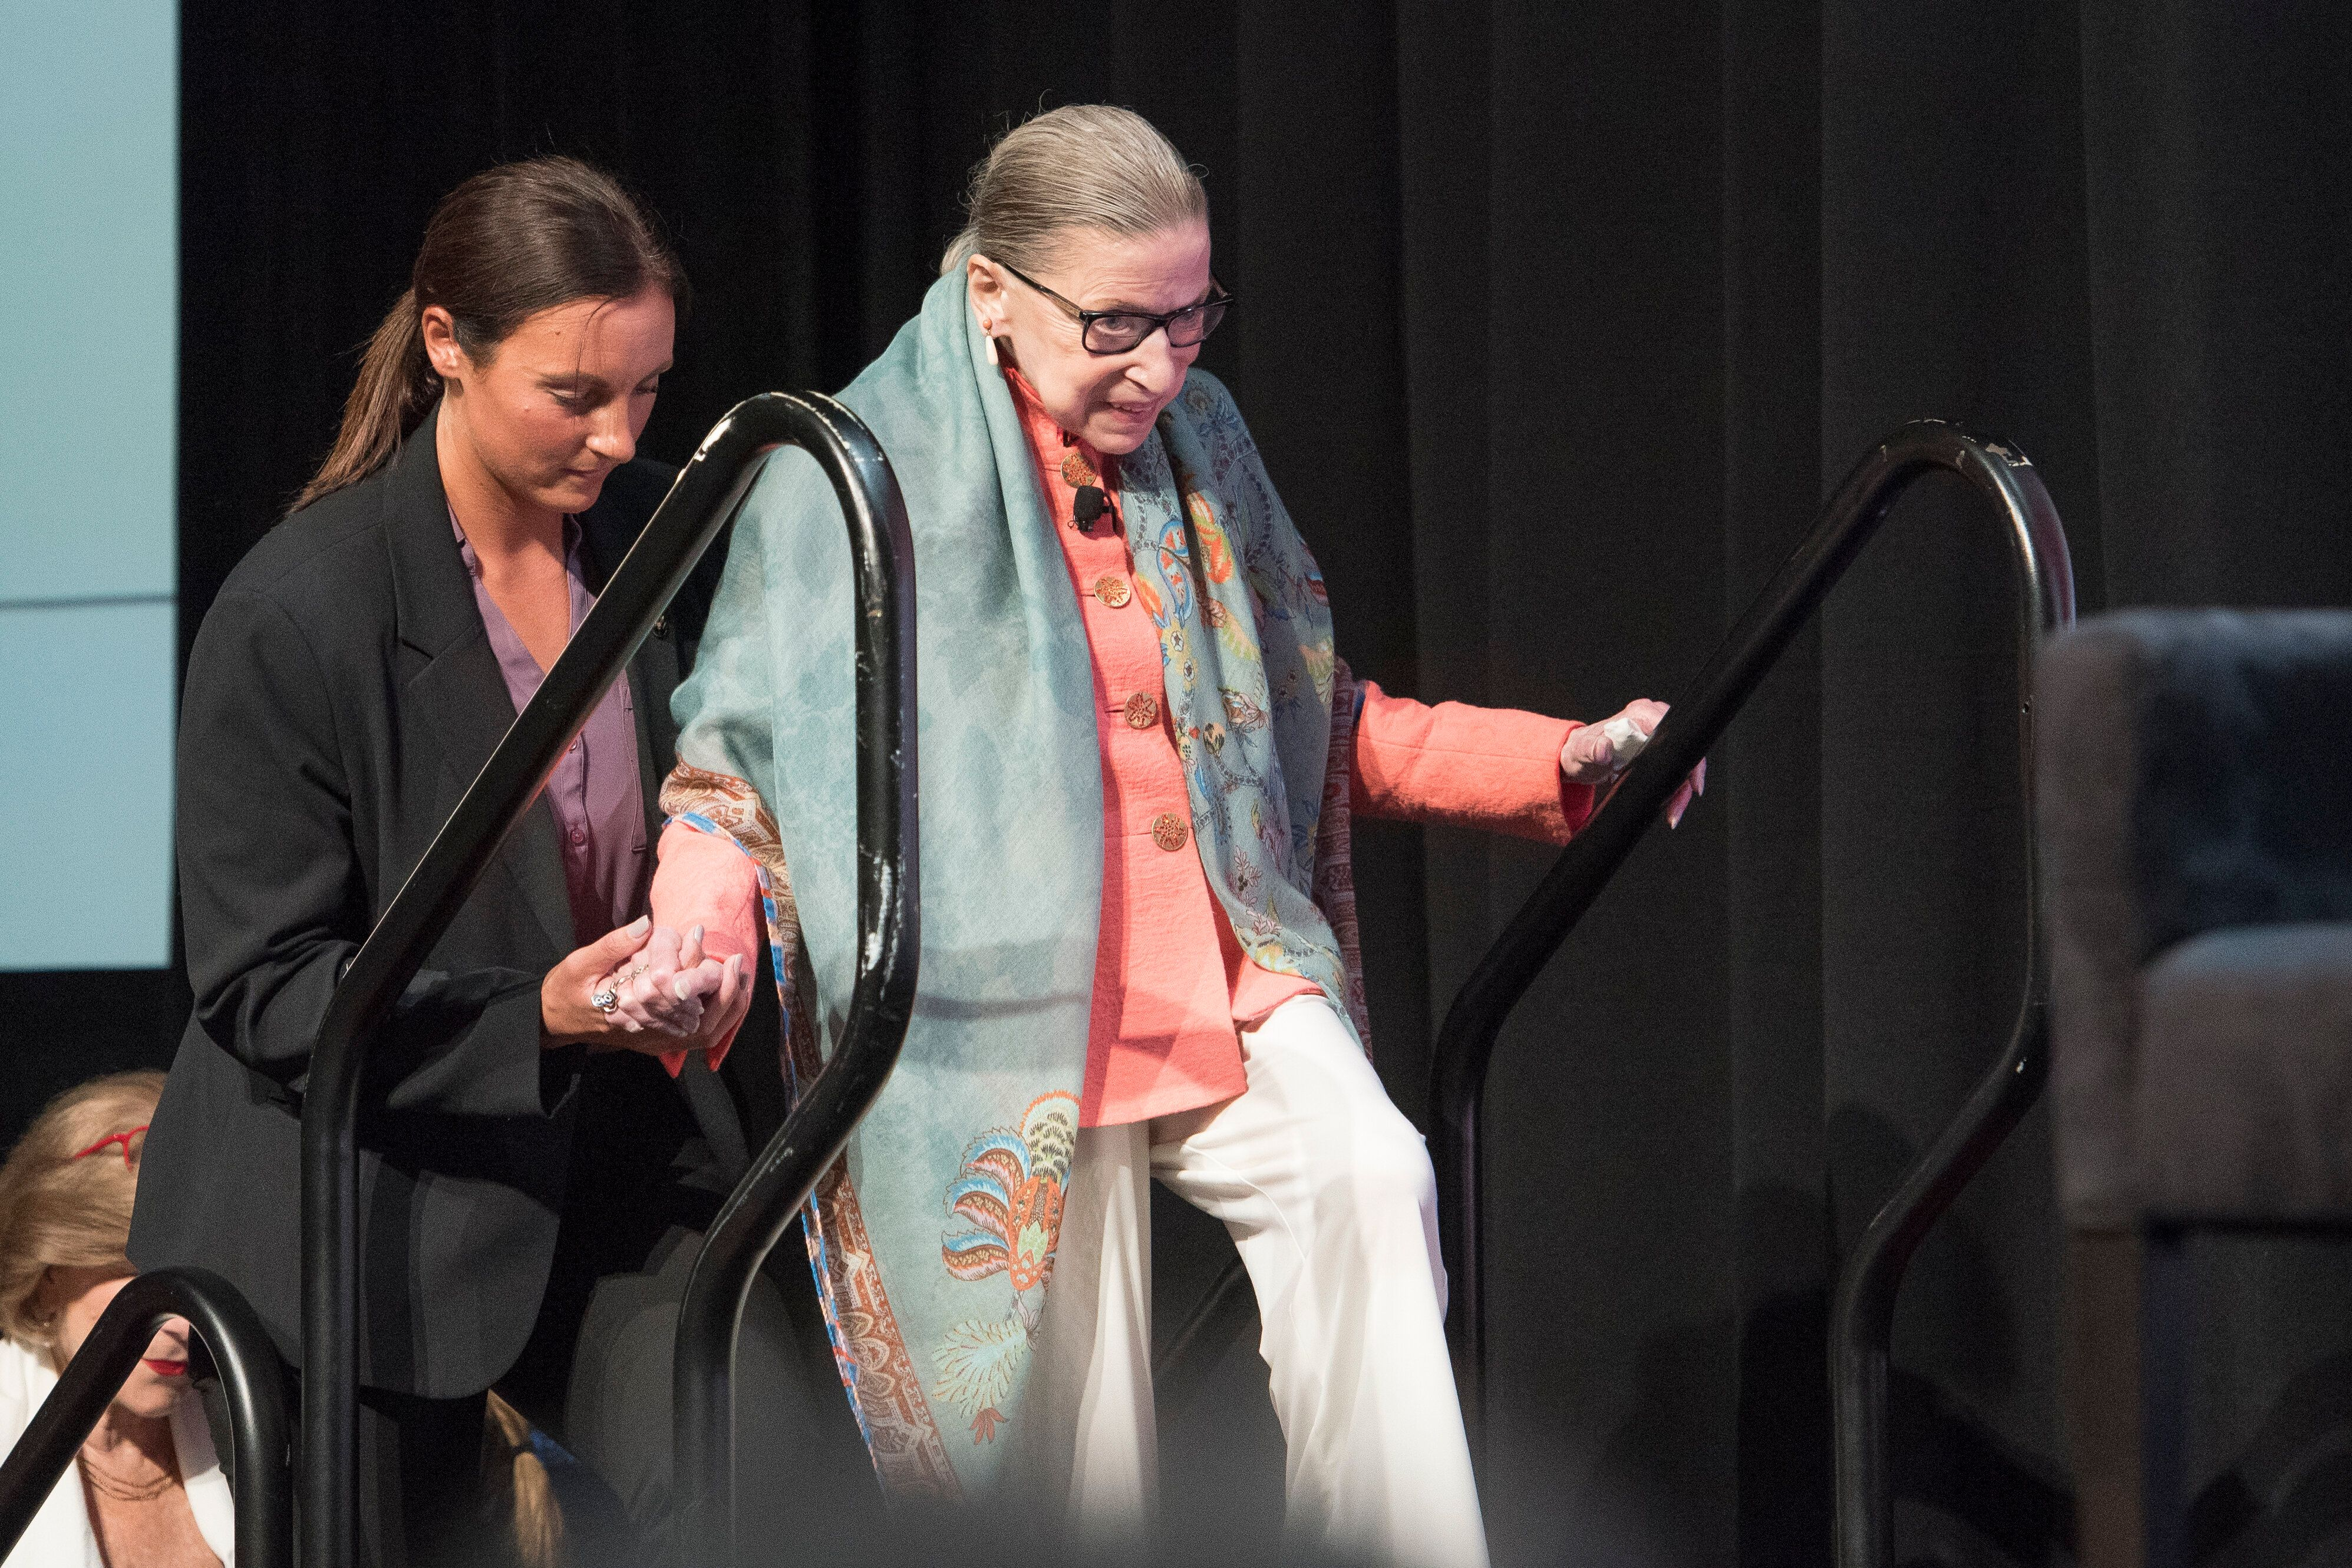 Supreme Court Associate Justice Ruth Bader Ginsburg is aided by a member of her security detail, as she walks up a set of sta